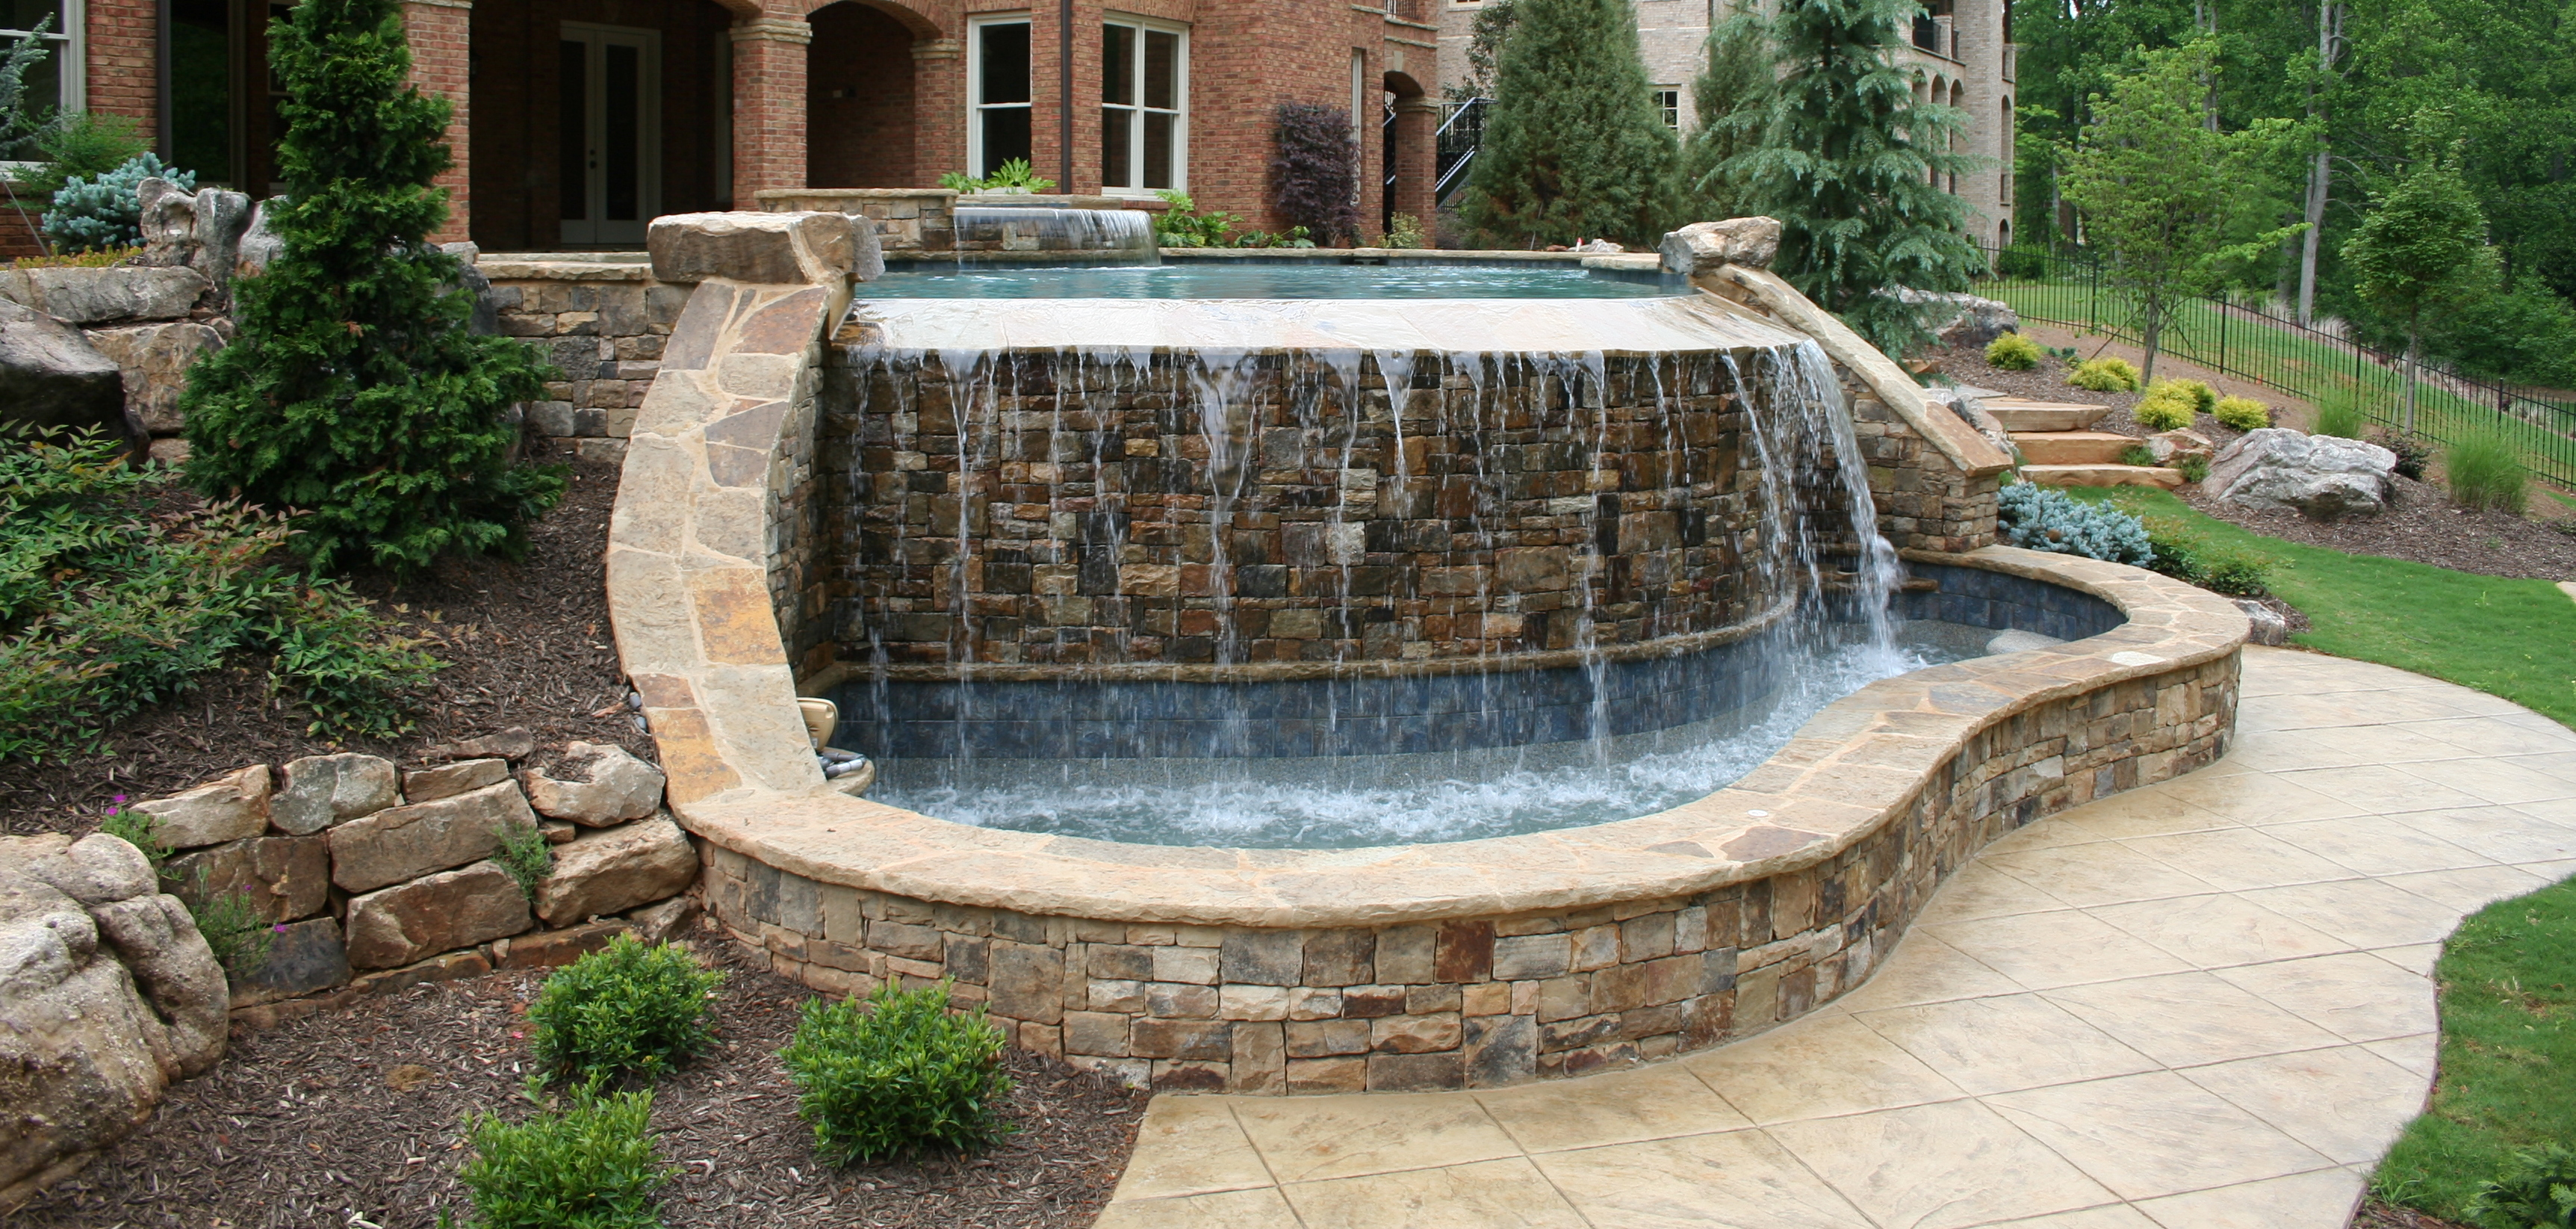 Your eye-catching water feature is a phone call away